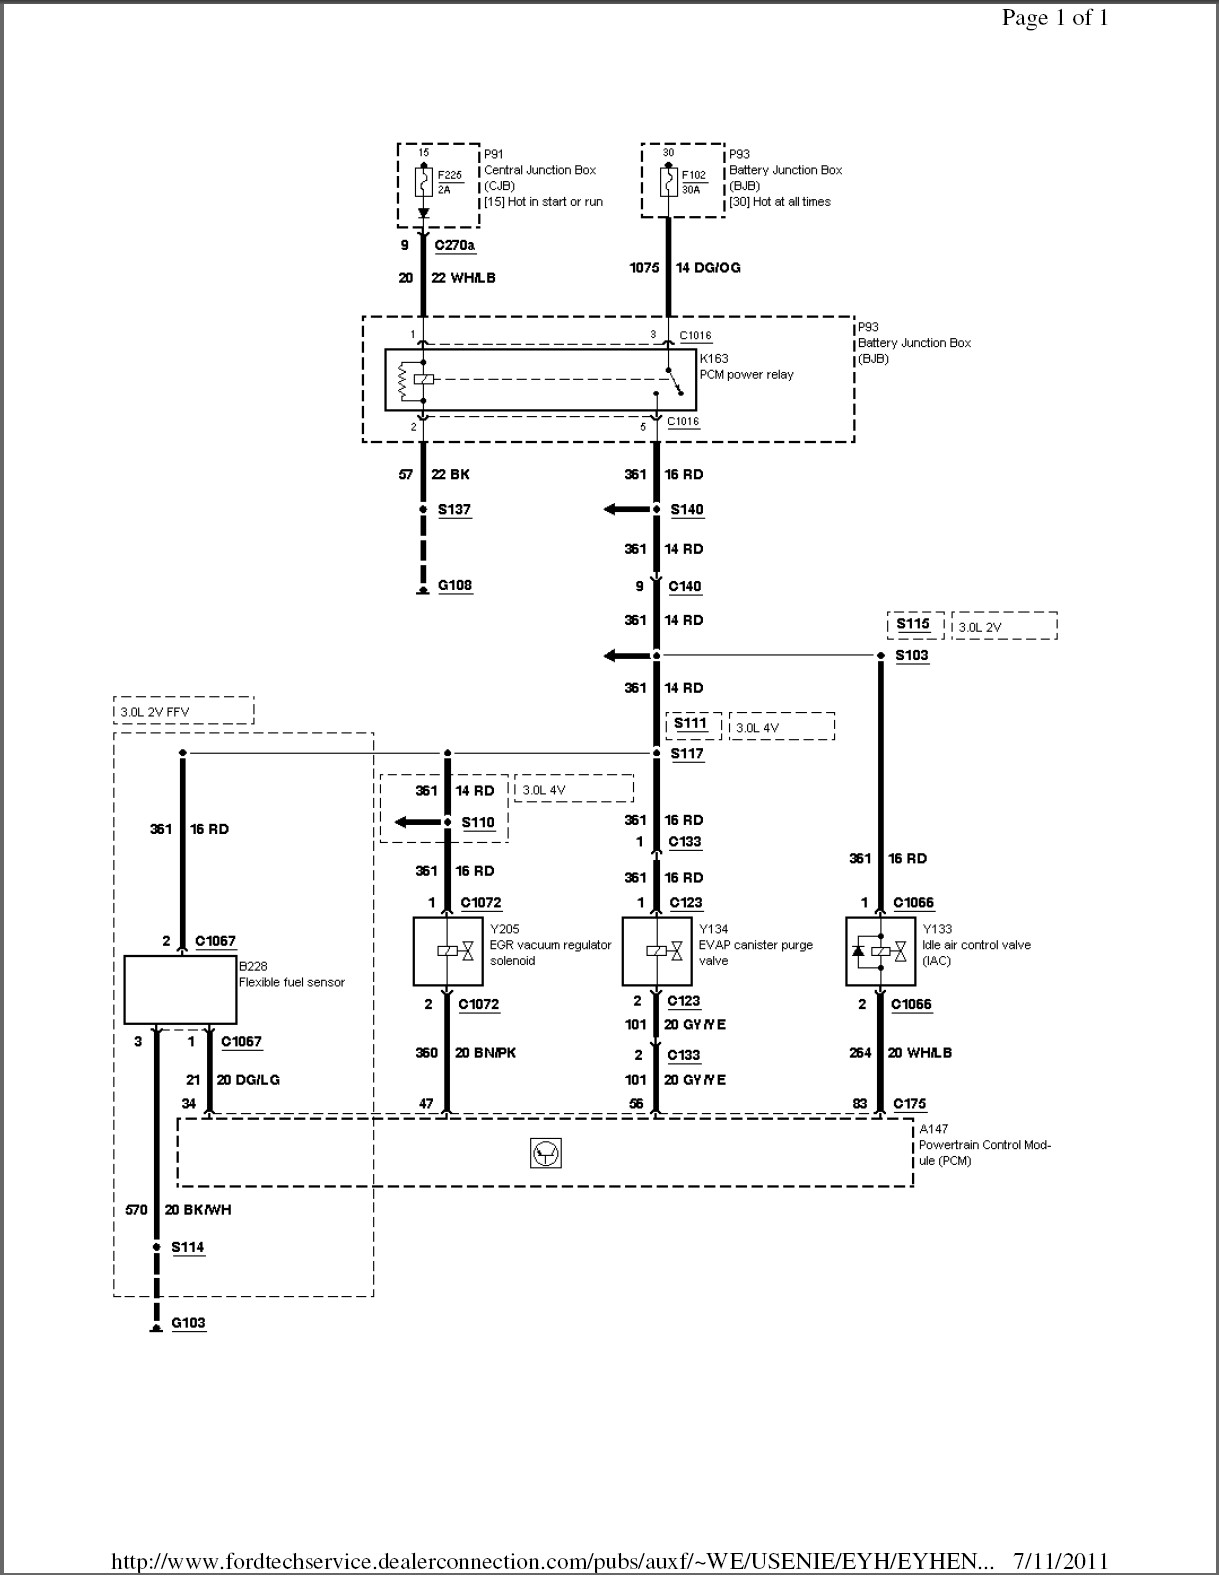 2004 Ford Taurus Wiring Diagram Together With 2000 Ford Taurus Wiring